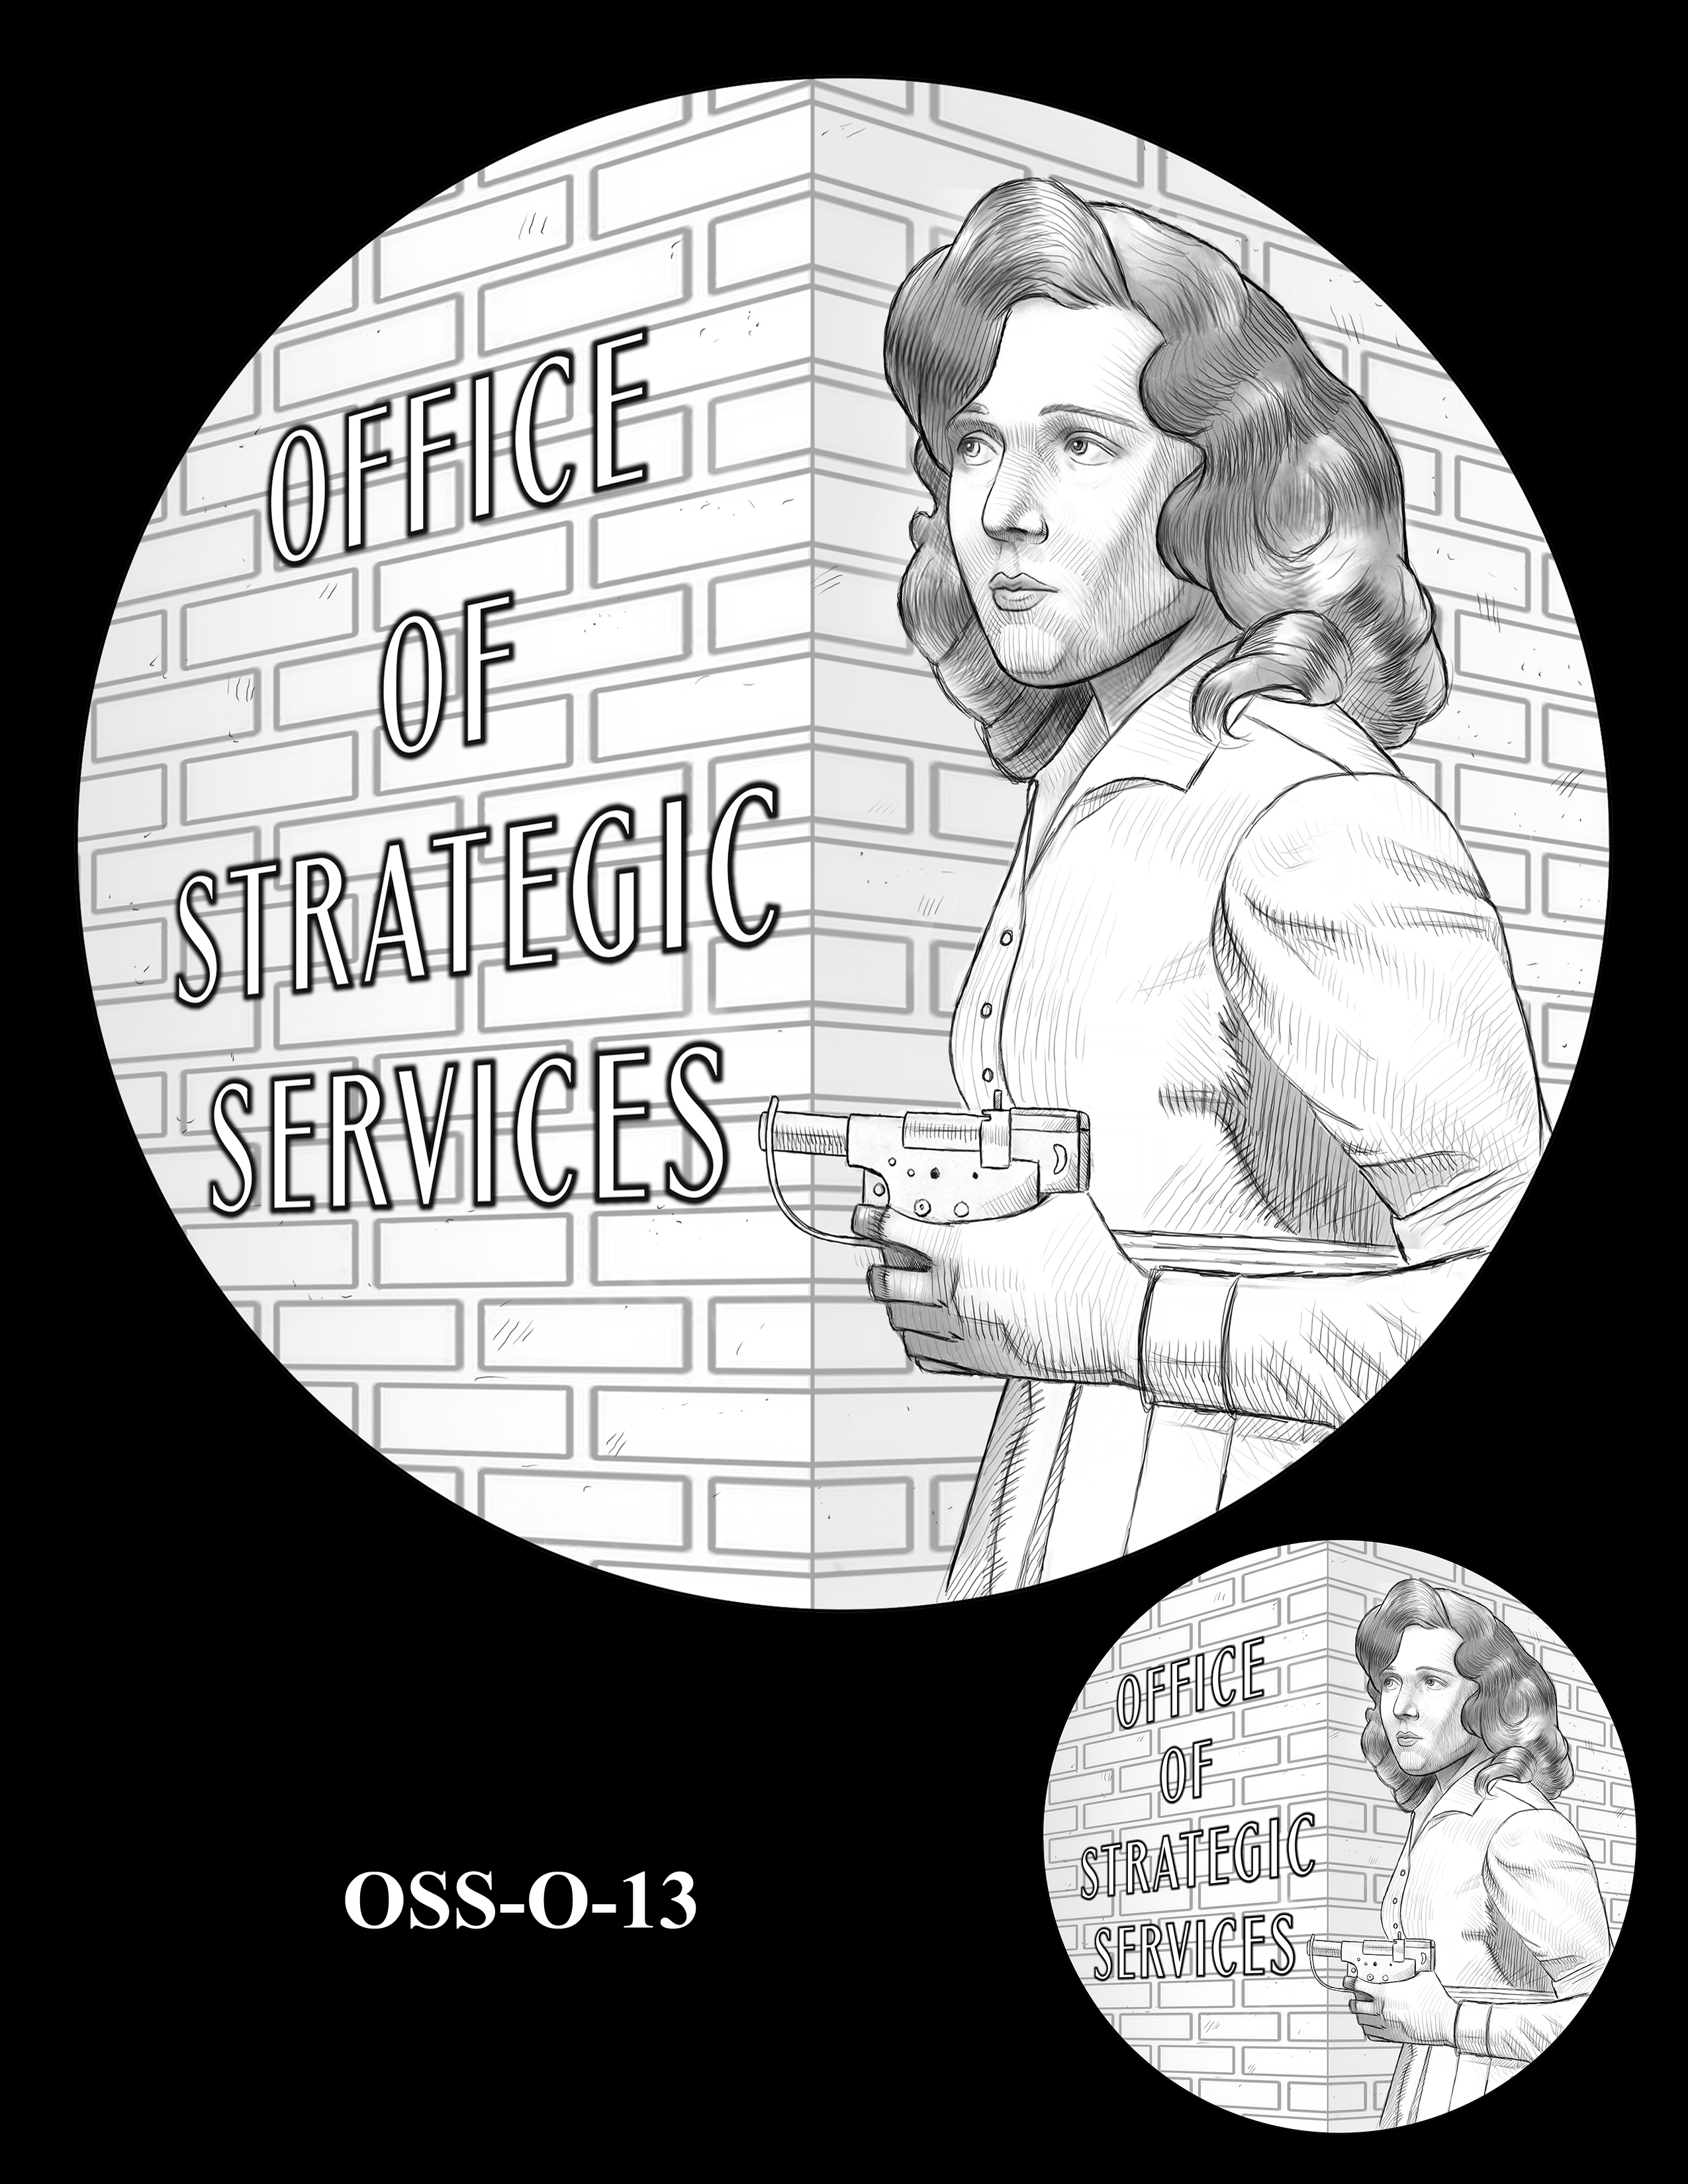 OSS-O-13 -- Office of Strategic Services Congressional Gold Medal